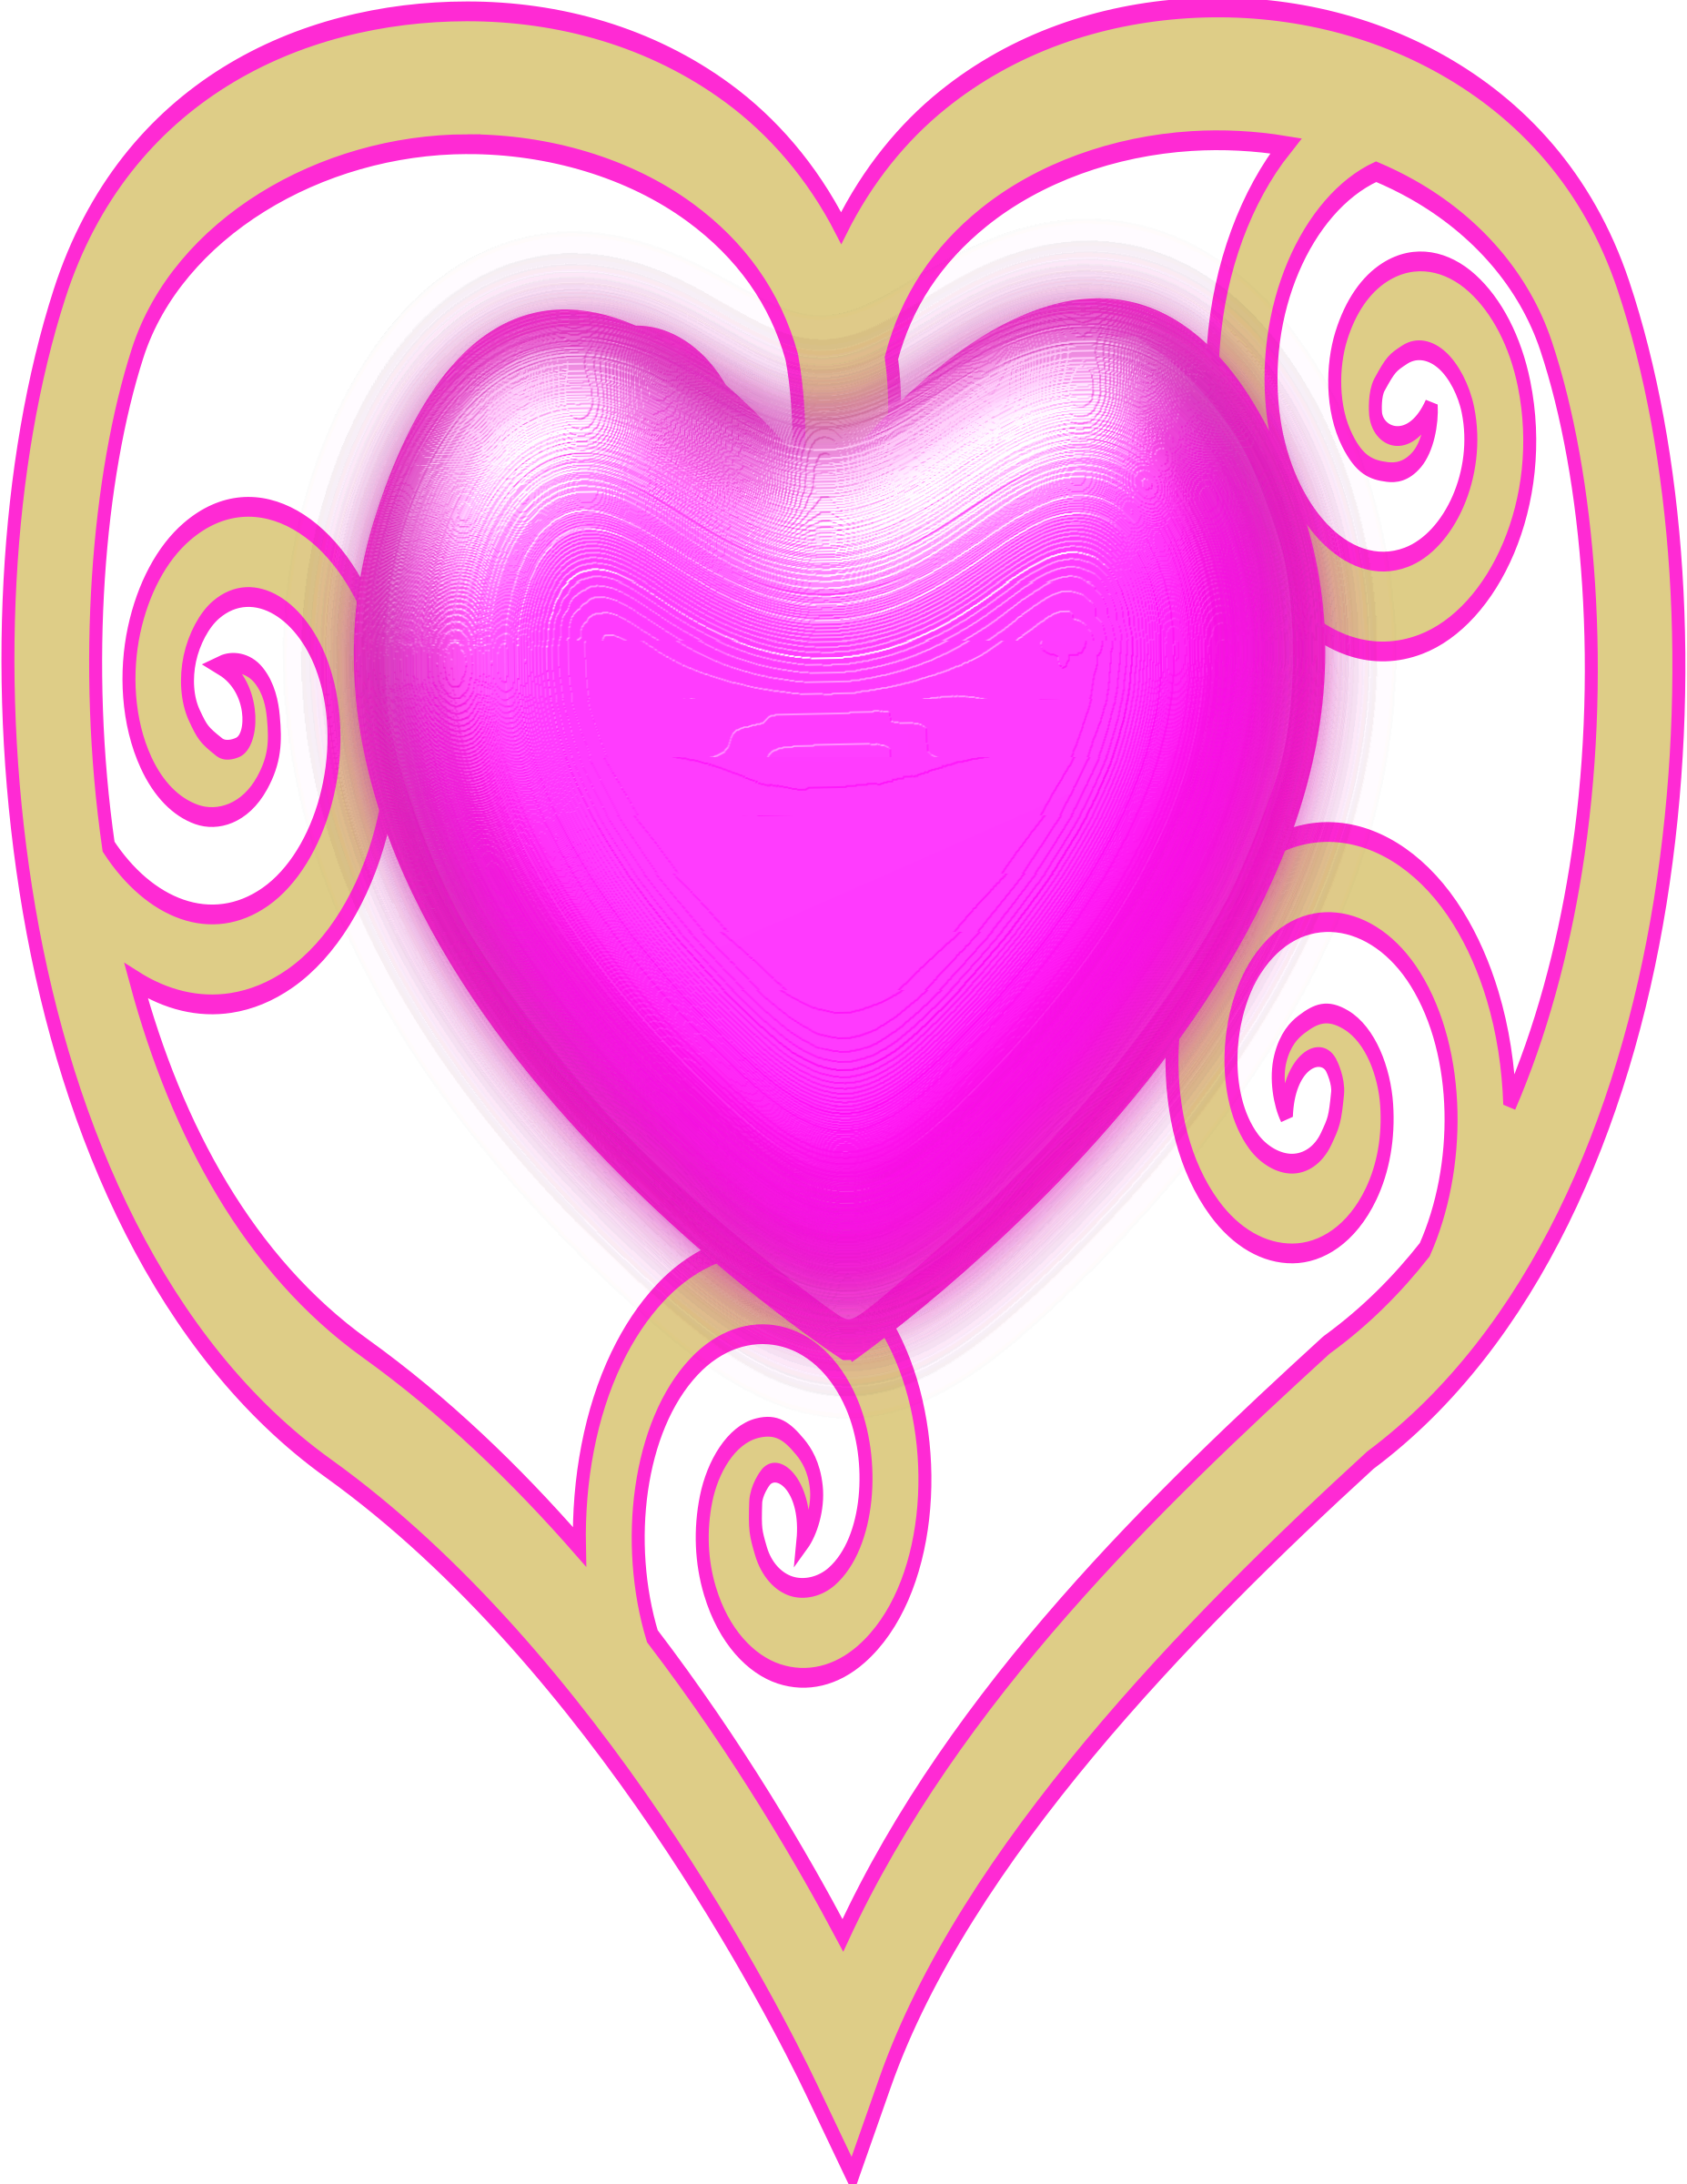 Heart with crown clipart transparent image library stock Queen Crown Clipart at GetDrawings.com | Free for personal use Queen ... image library stock